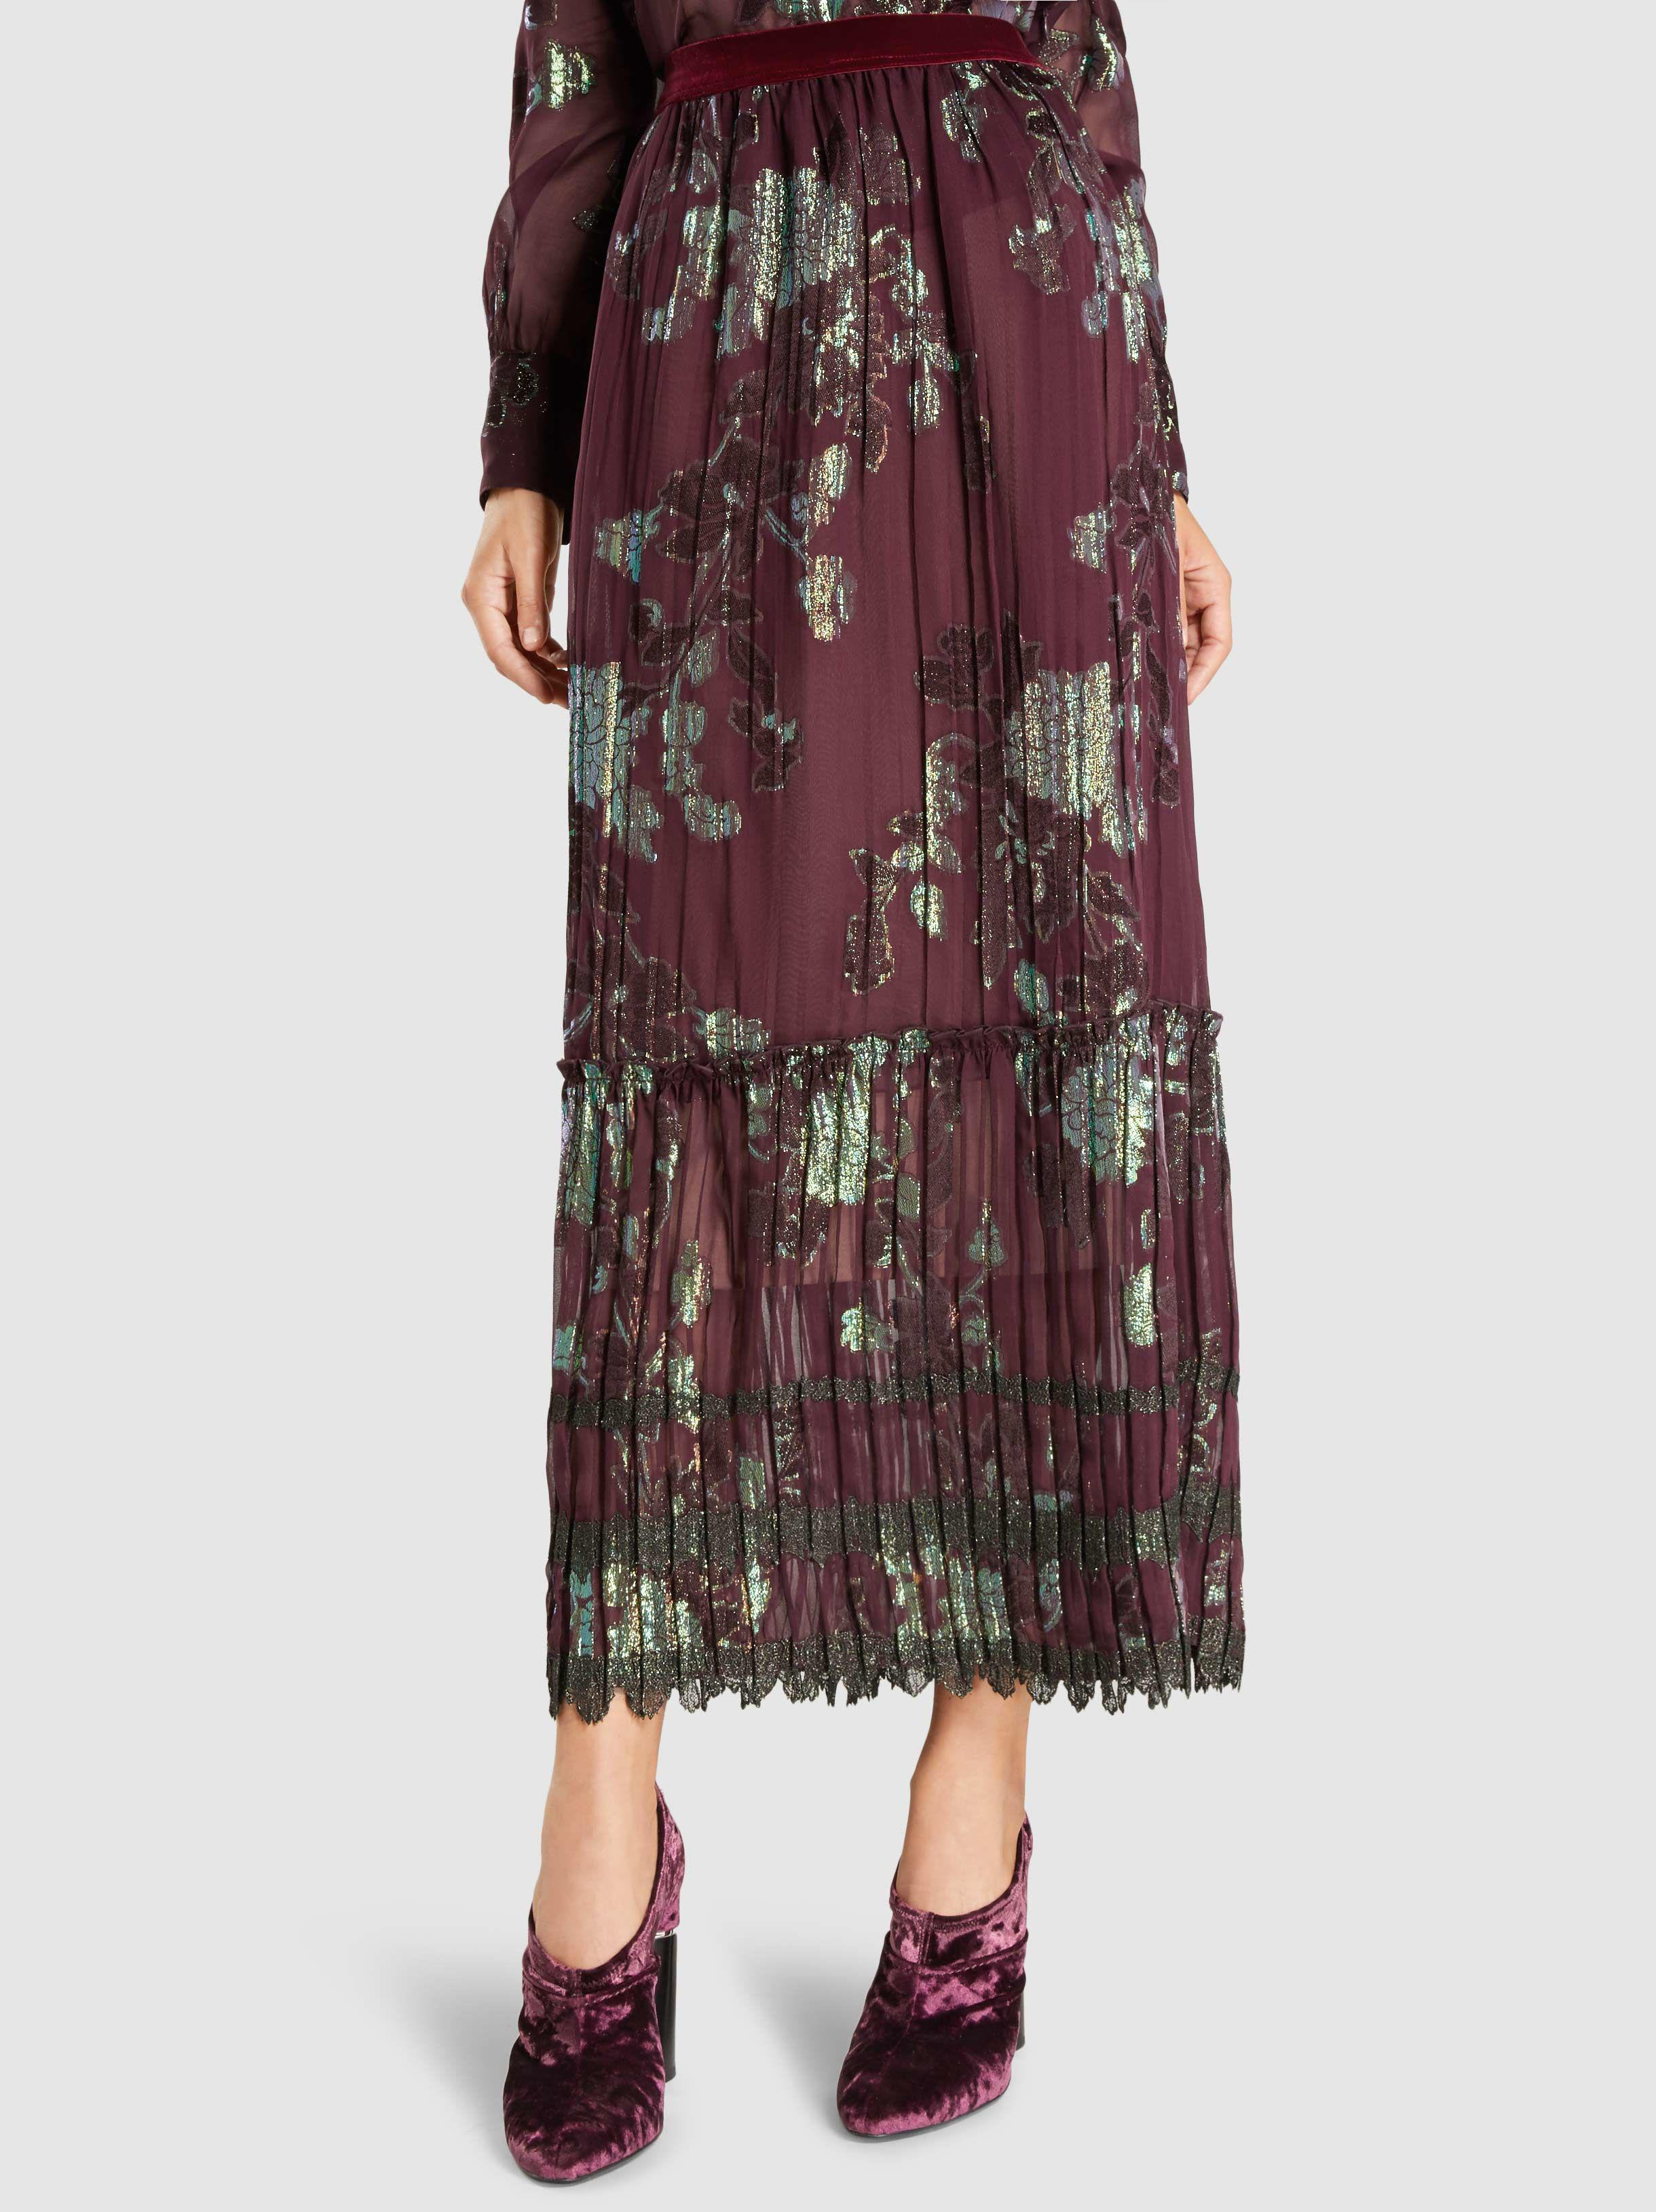 Iridescent Pleated Fil Coup Release Dates For Sale Free Shipping From China 2018 New Cheap Price AtcVn